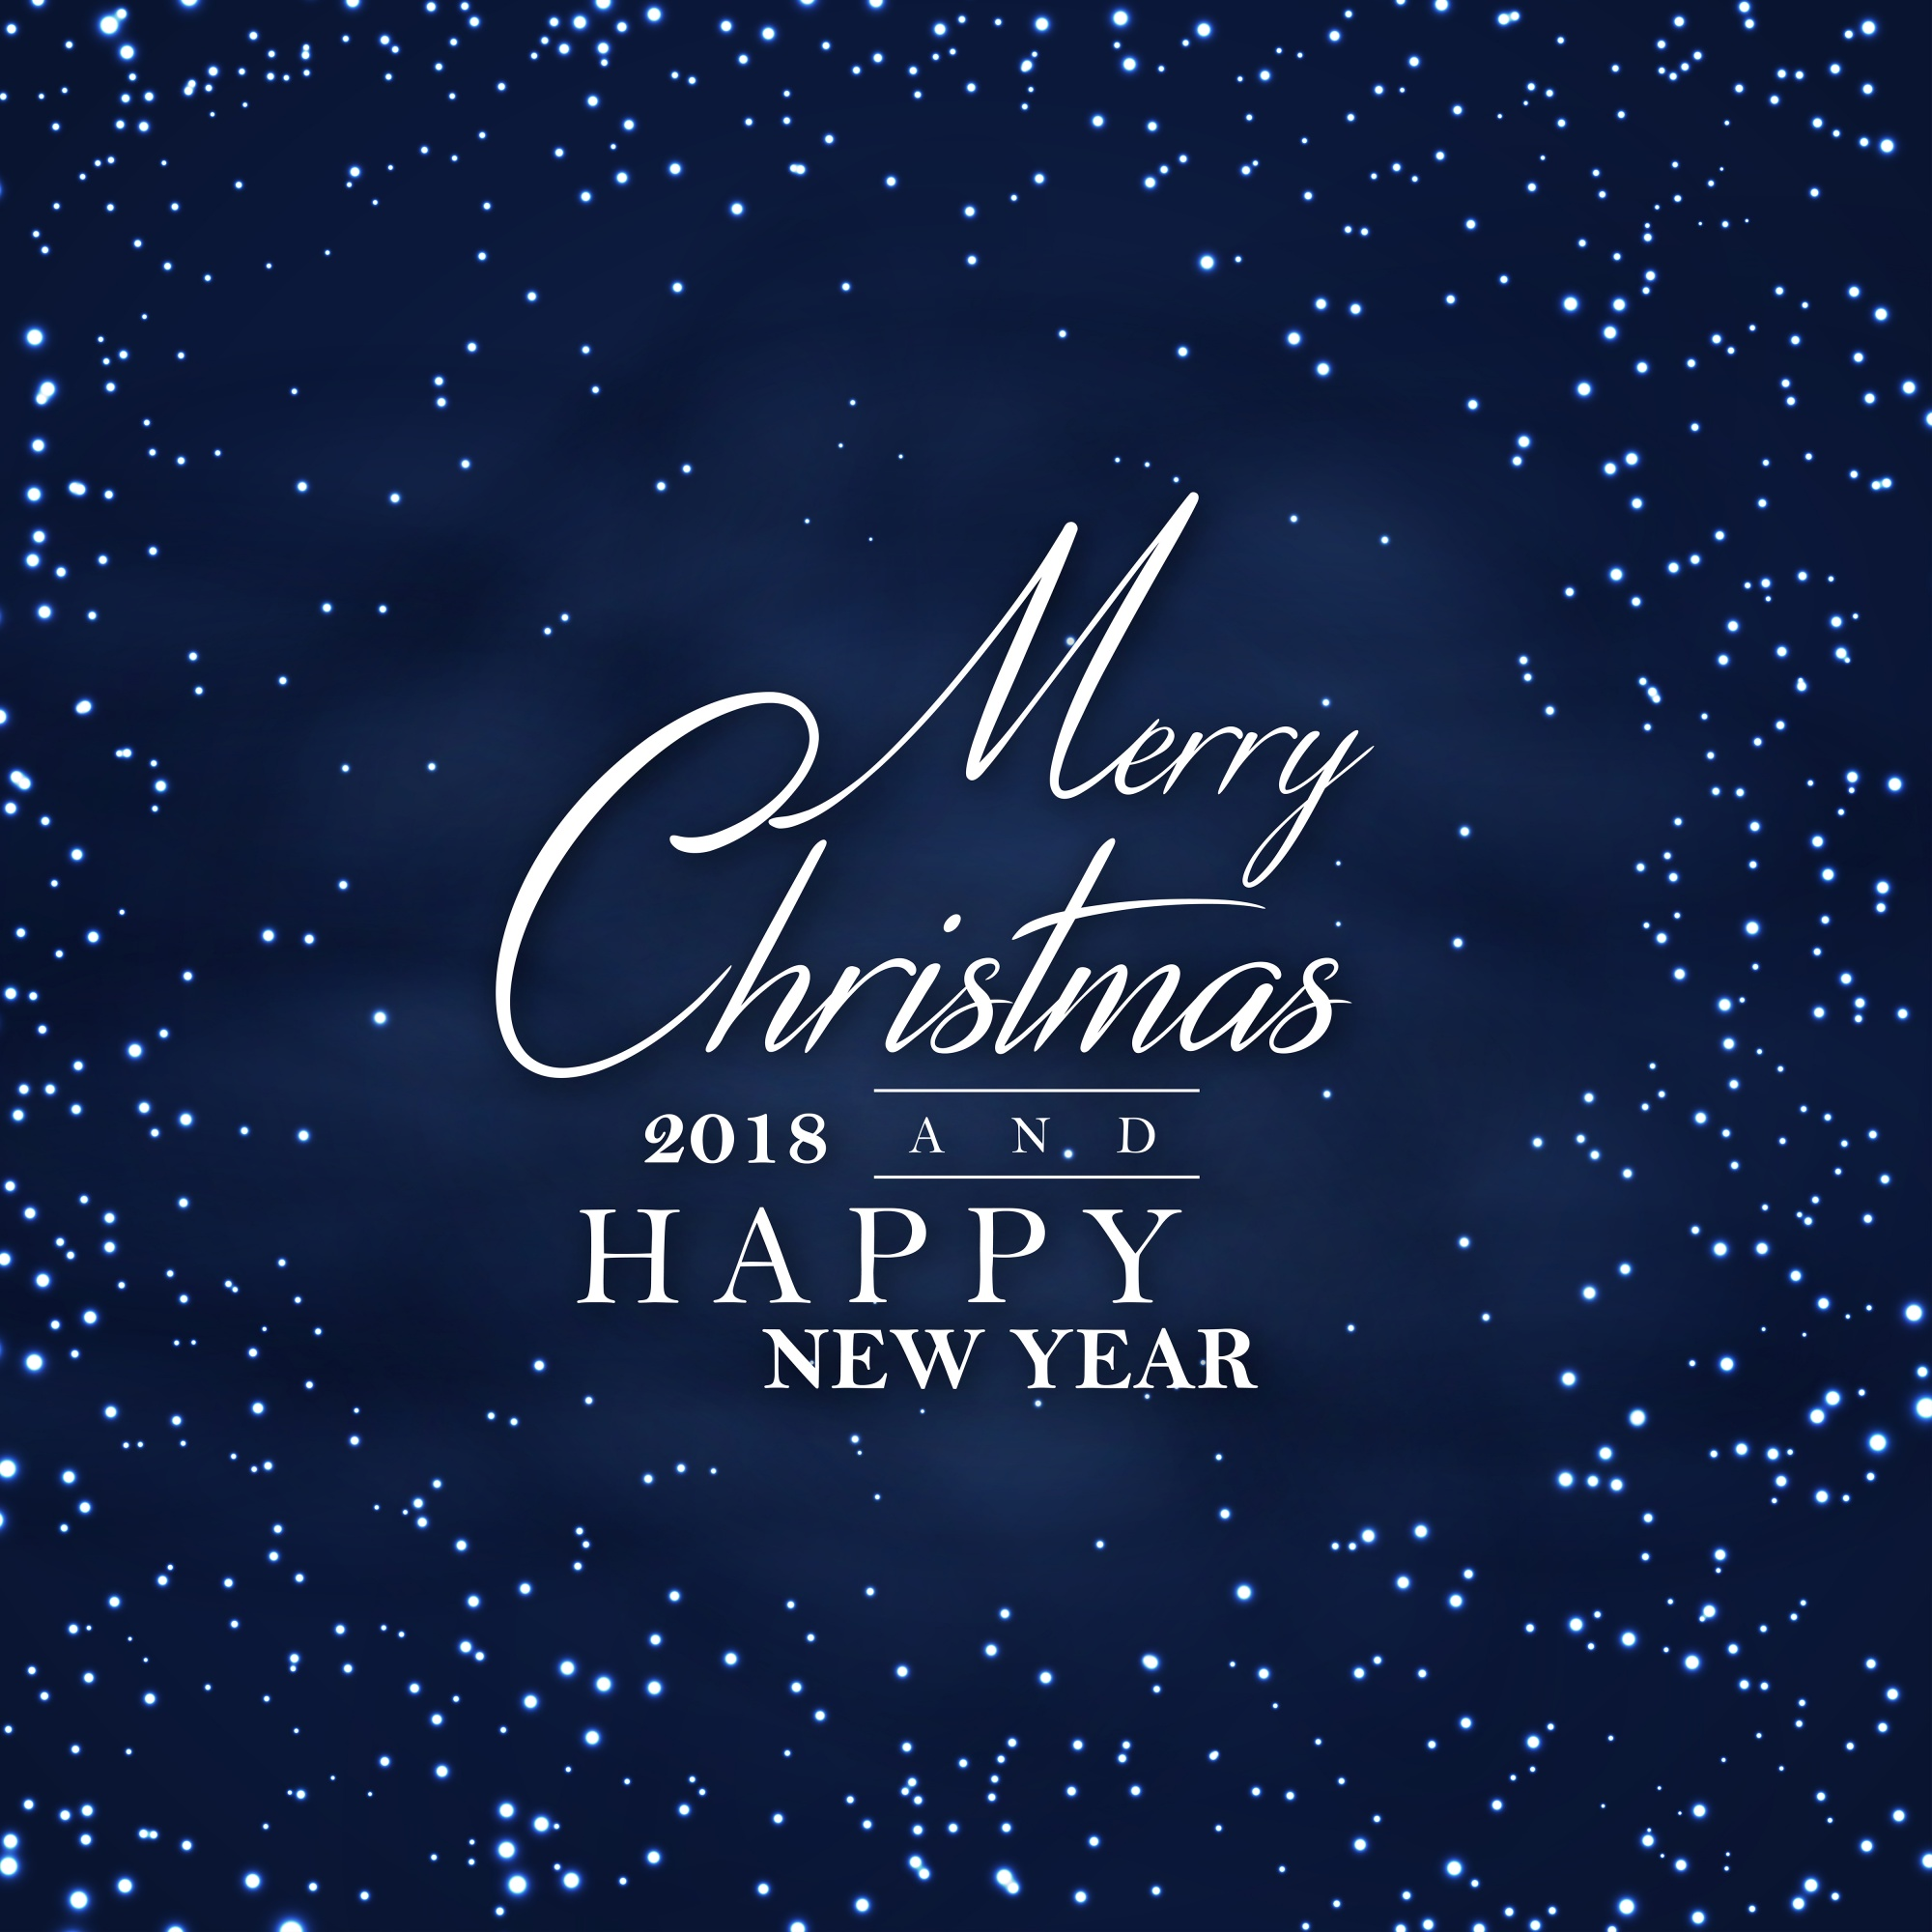 Dark Night Merry Christmas and Happy New Year 2018 Poster Background